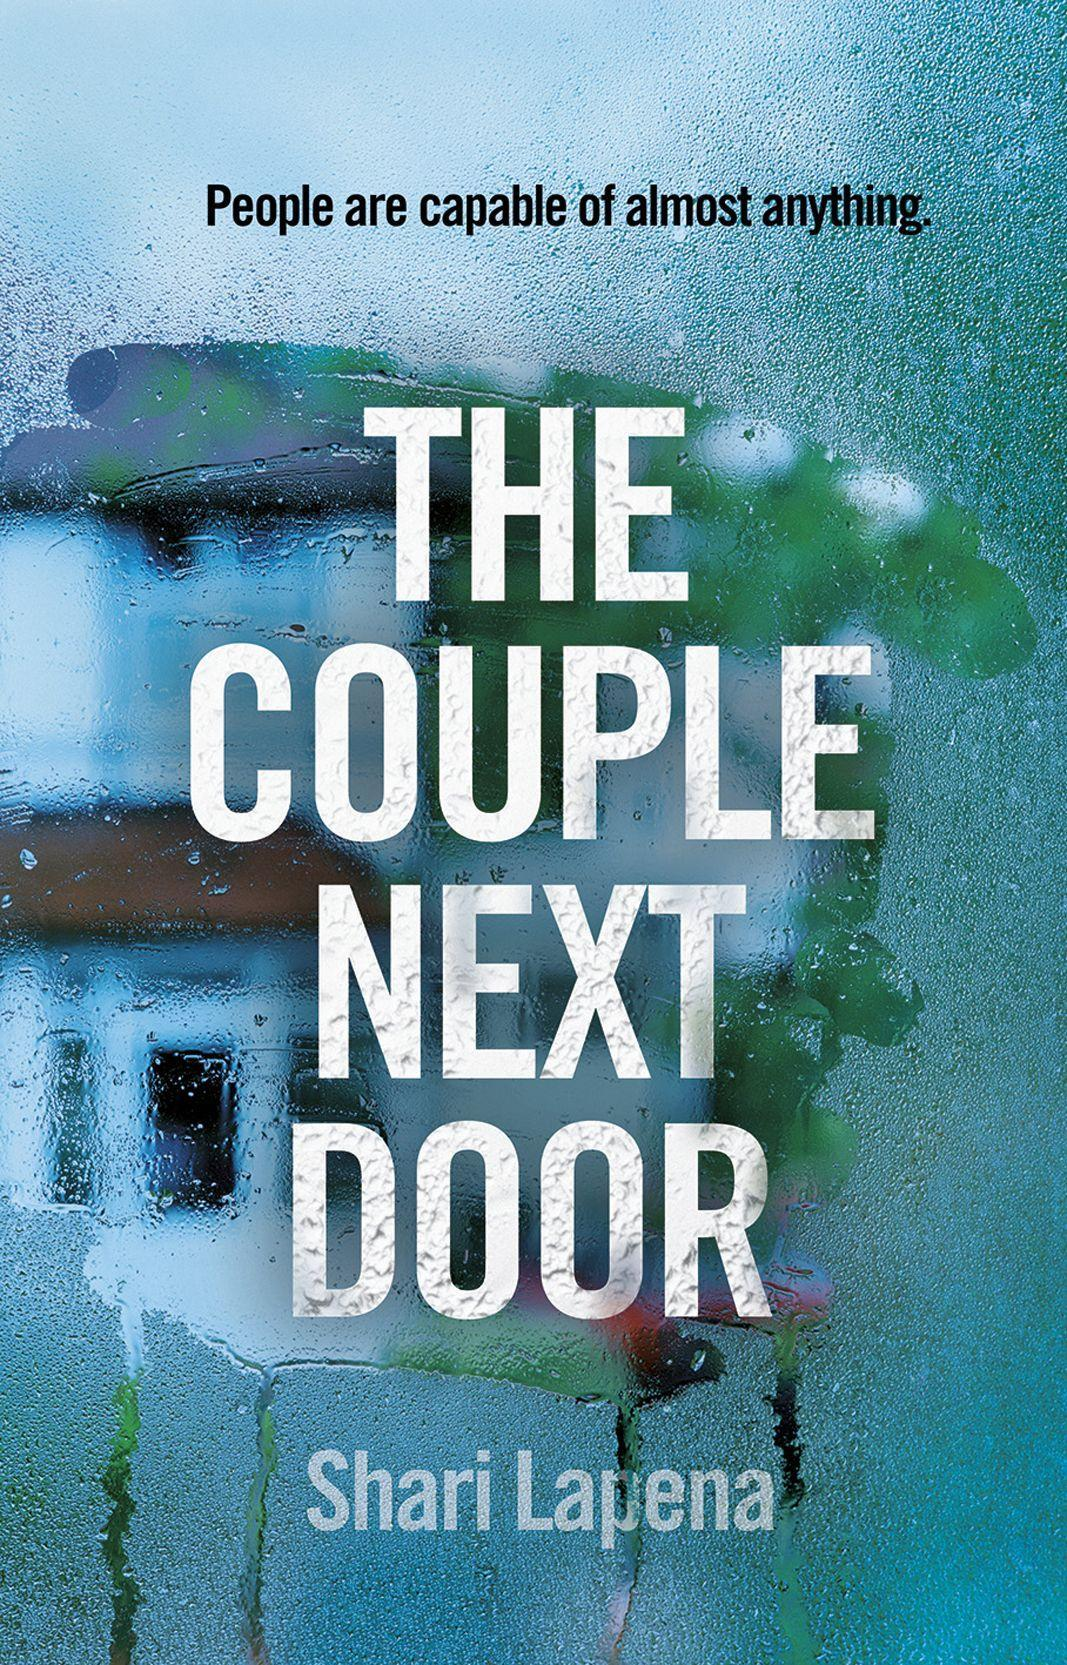 <p><strong><em>The Couple Next Door</em></strong></p> <p>By Shari Lapena</p> <p>A page-turner for fans of <em>Gone Girl</em>, <em>The Couple Next Door</em> follows Anne and Marco Conti, a couple who seem to have it all: a perfect home, great relationship and a beautiful baby girl – until one night, a frightening crime changes their lives.</p> <p>The deeper the investigators delve into the details of the Conti's lives, the clearer it becomes that everything is not as it seems. Expect surprises and secrets – lots of them.</p>